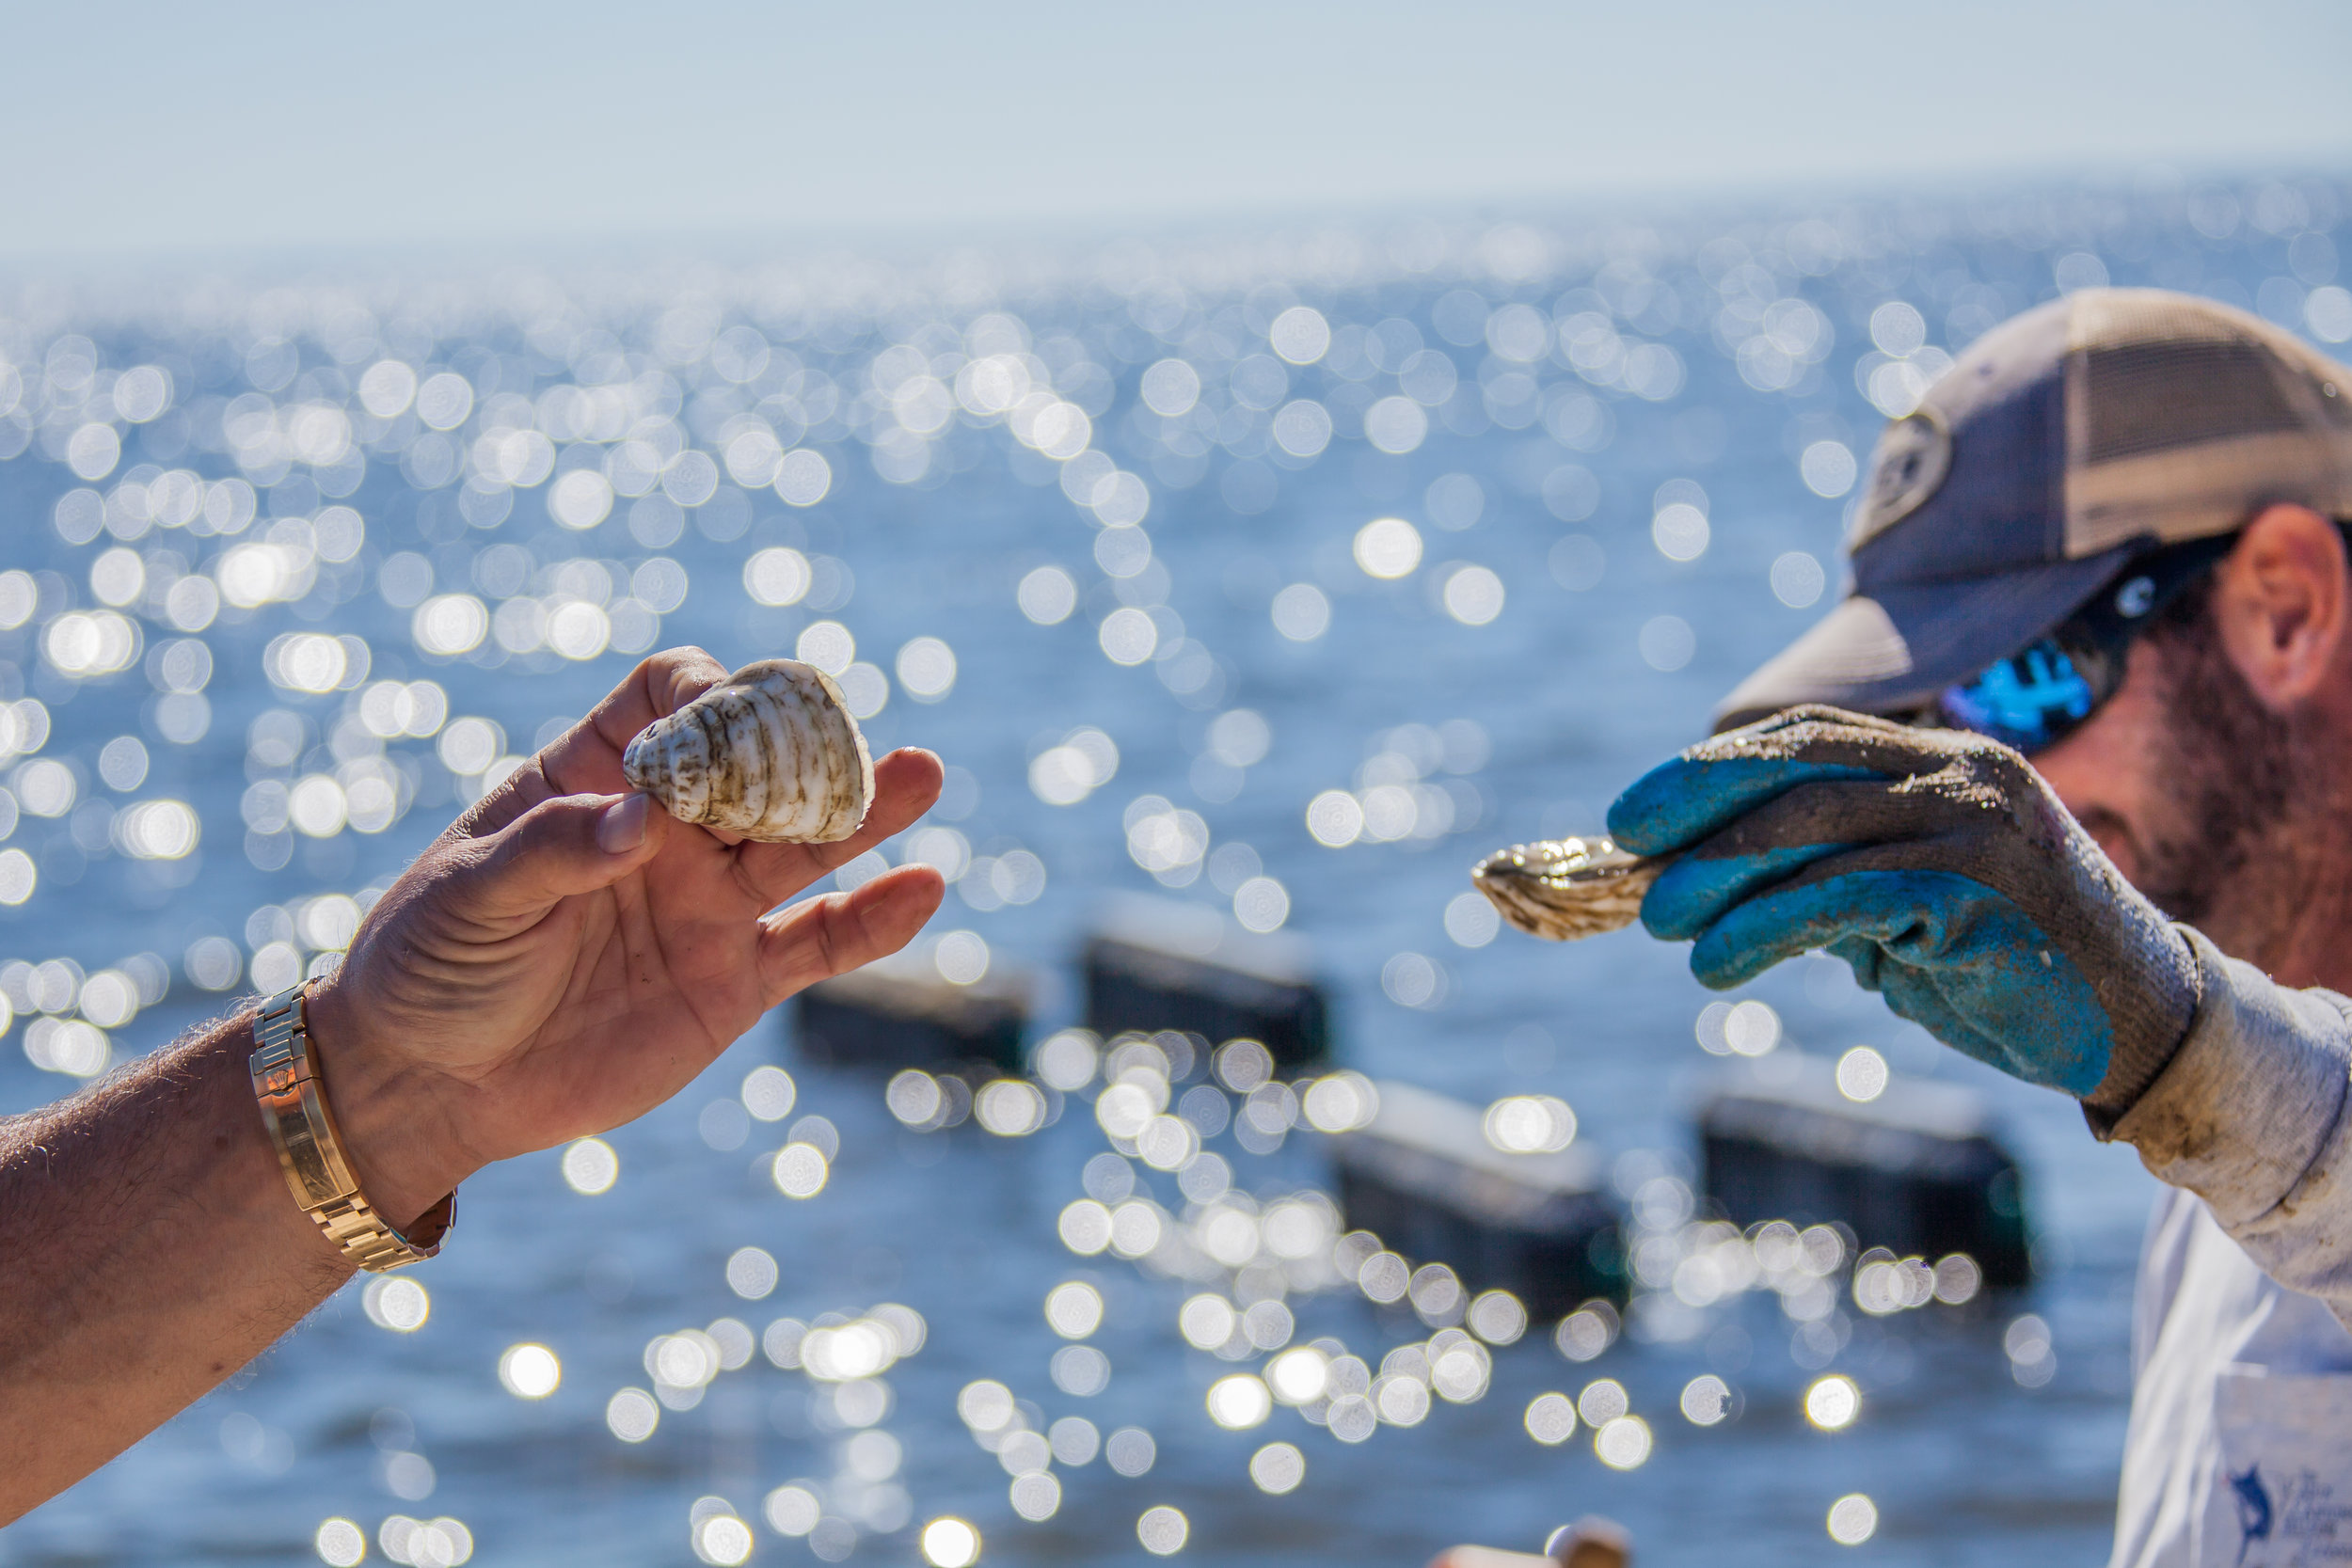 Pensacola Bay Oysters. Source: Steven Gray Photography